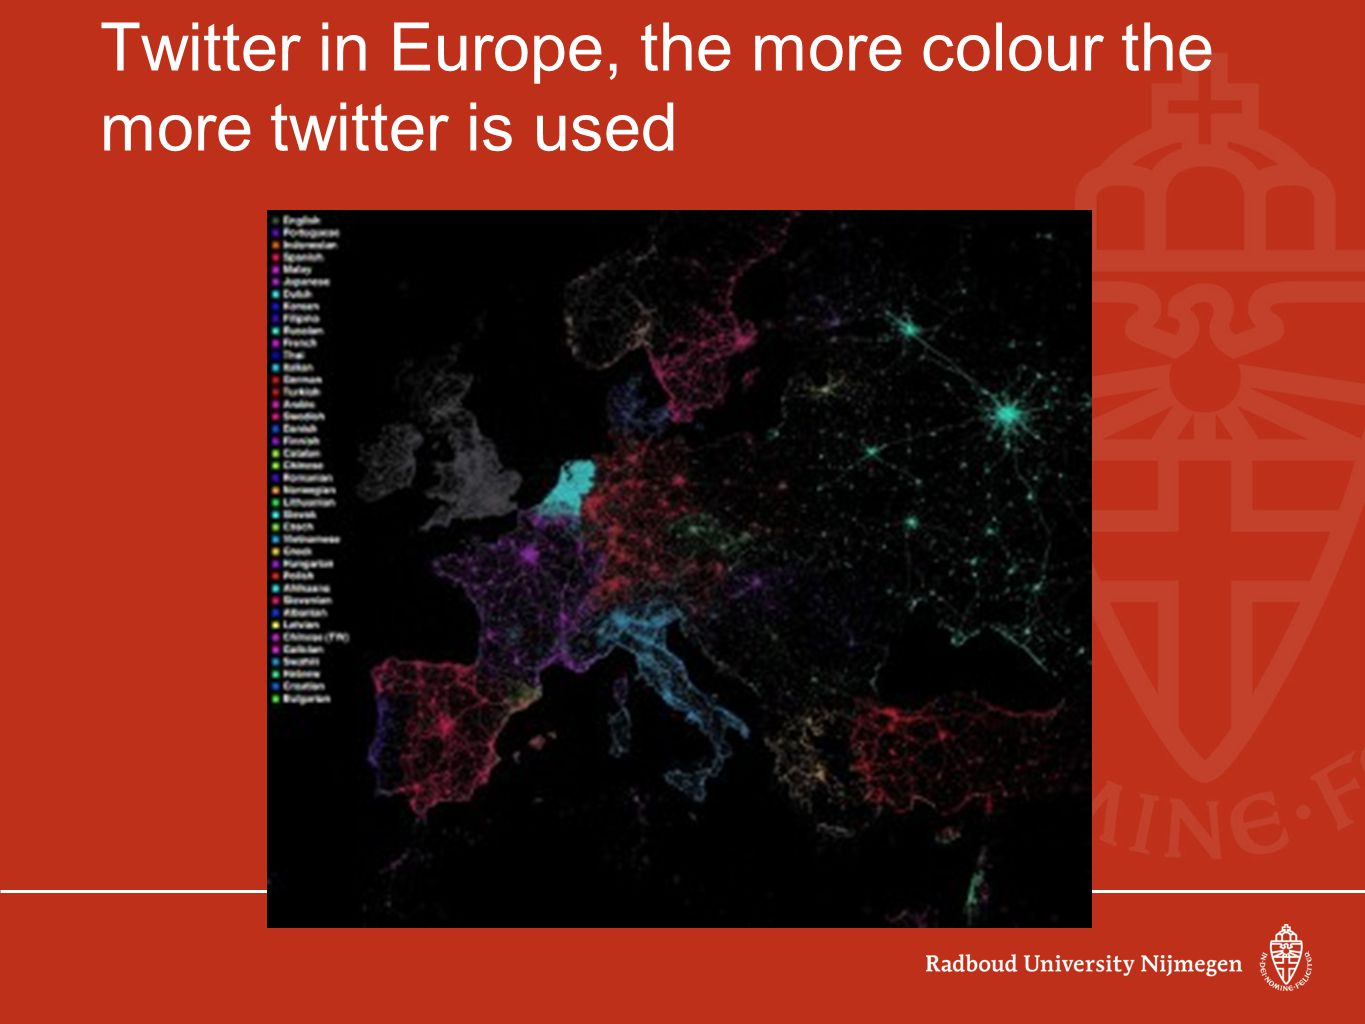 Twitter in Europe, the more colour the more twitter is used